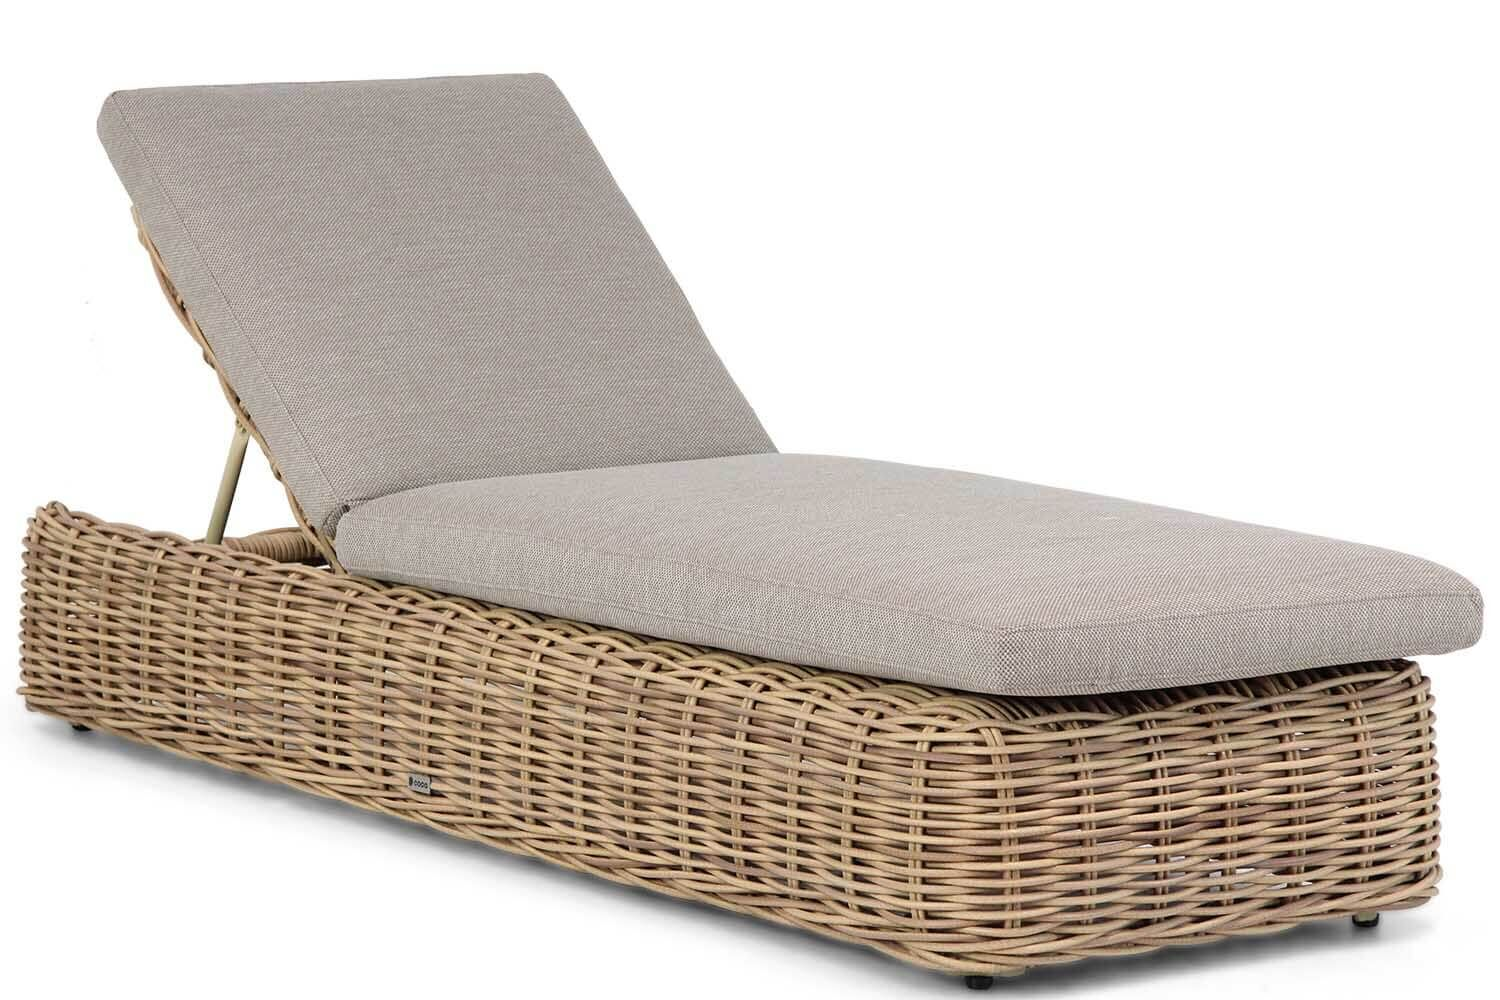 Coco Spiaggia ligbed natural